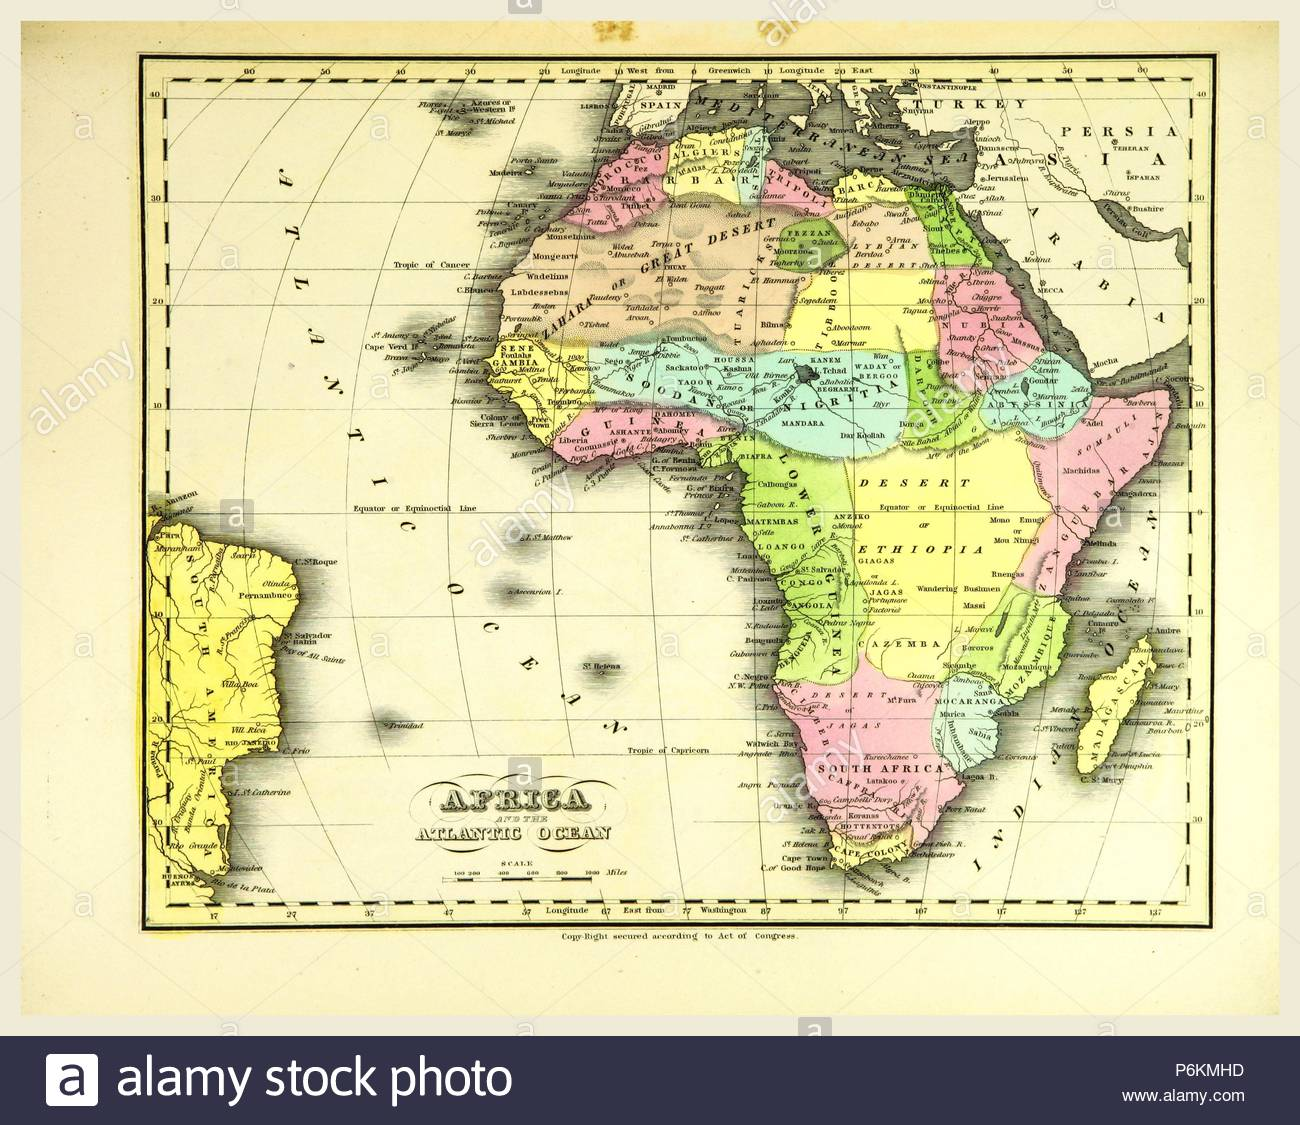 Map Africa, 19th century engraving Stock Photo: 210645609   Alamy